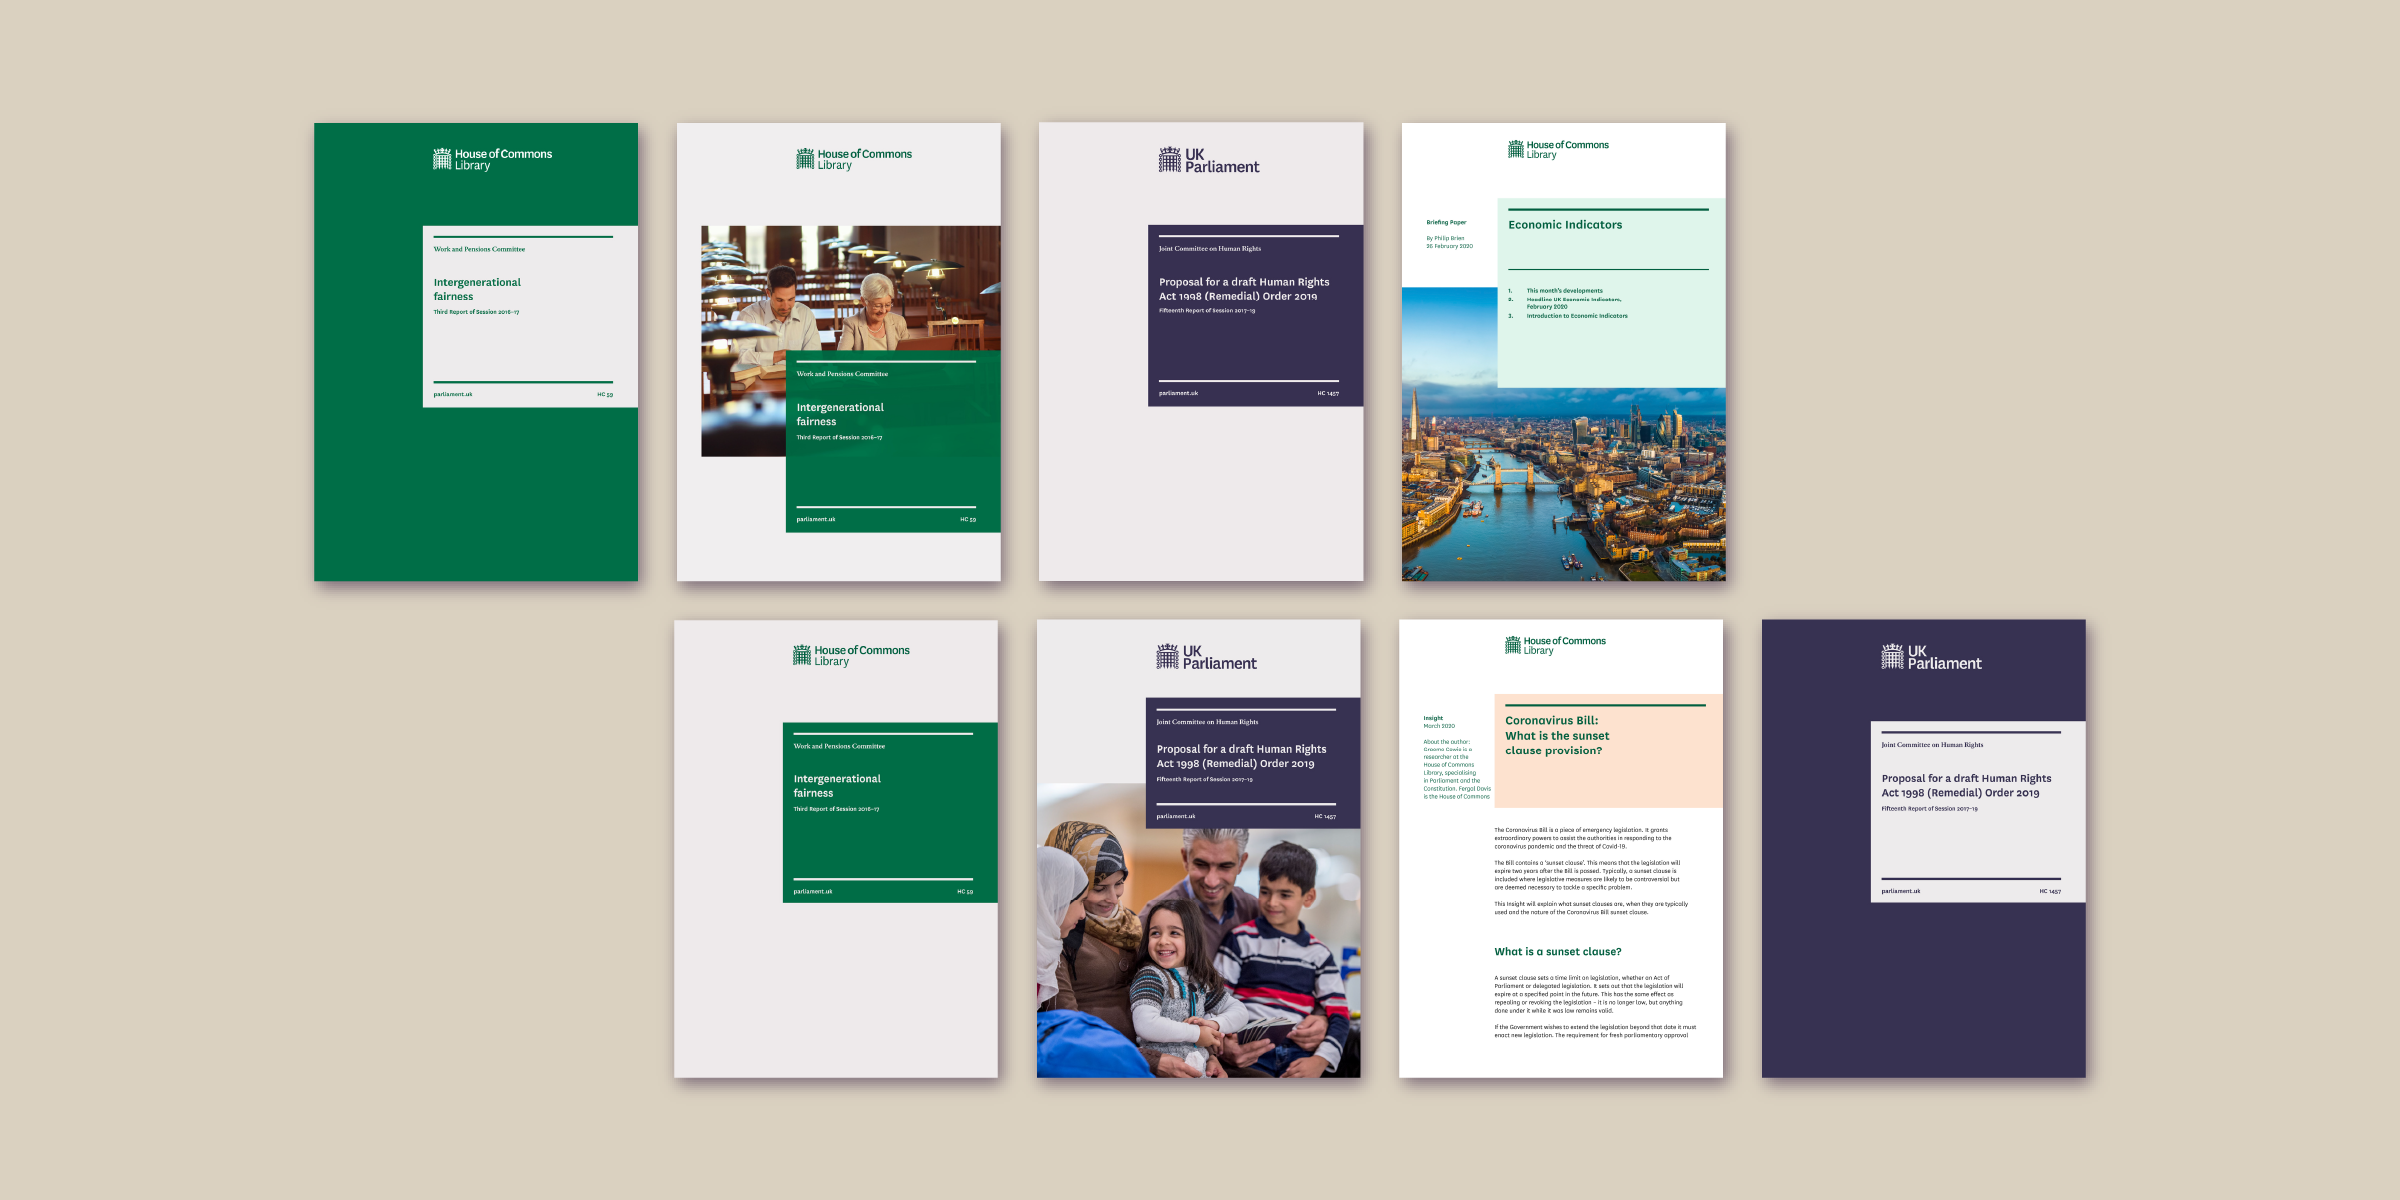 Several covers of UK Parliament and House of Commons reports